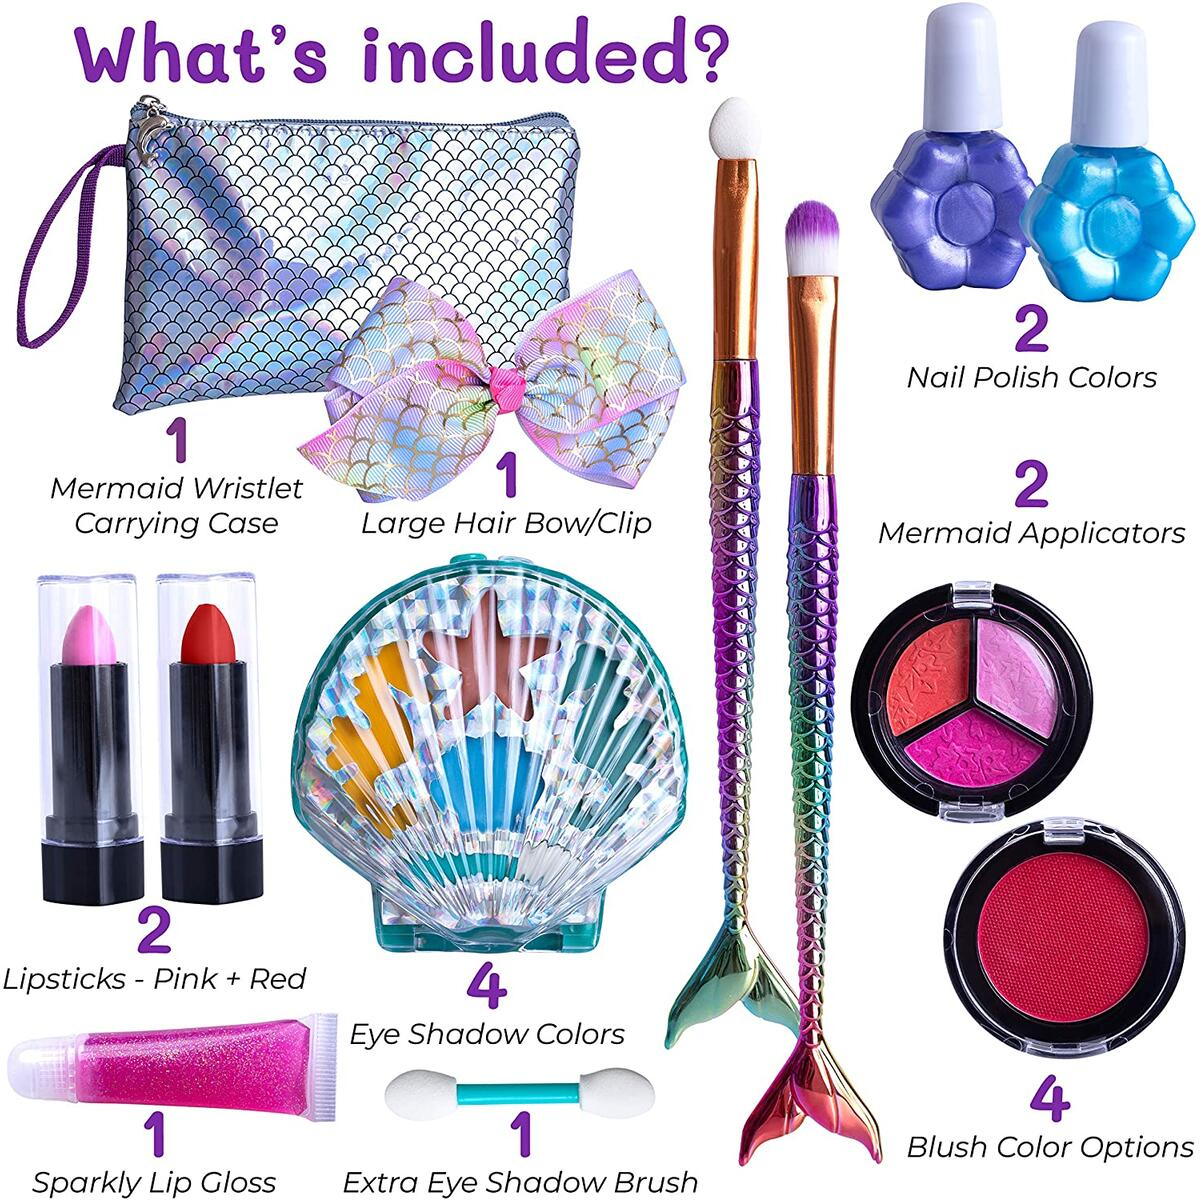 Purple Ladybug Mermaid Makeup Kit for Girls! Safe and Washable Mermaid Themed Makeup Set for Little Girls with a Handy Wristlet, Lipstick, Blush, Eye Shadow, & More! Great Gift Idea for Kids & Teens!